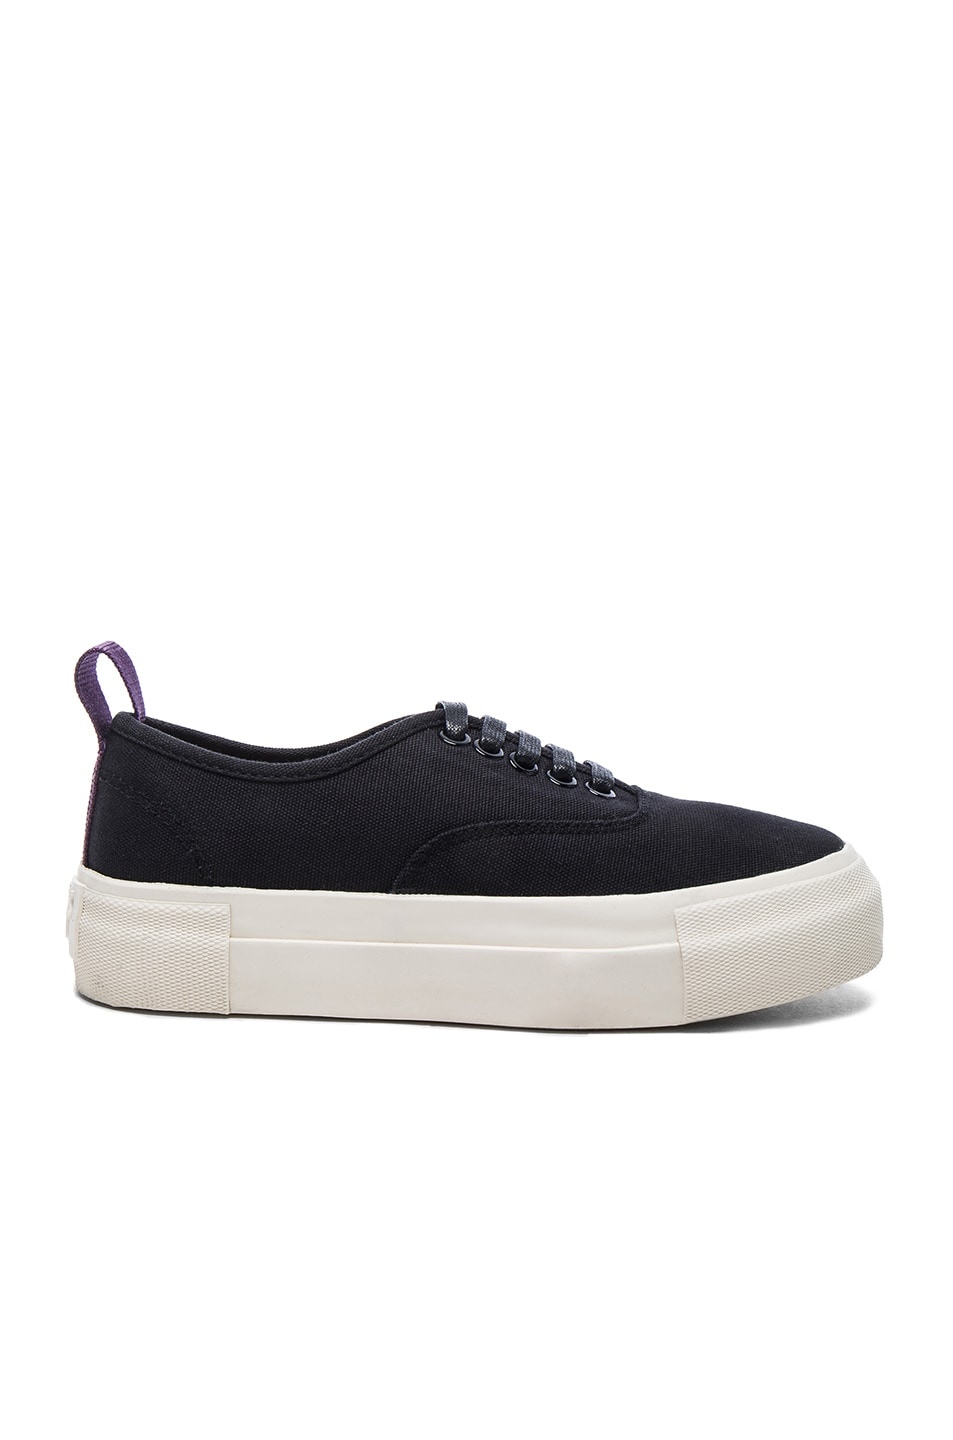 Image 1 of Eytys Canvas Mother Sneakers in Black